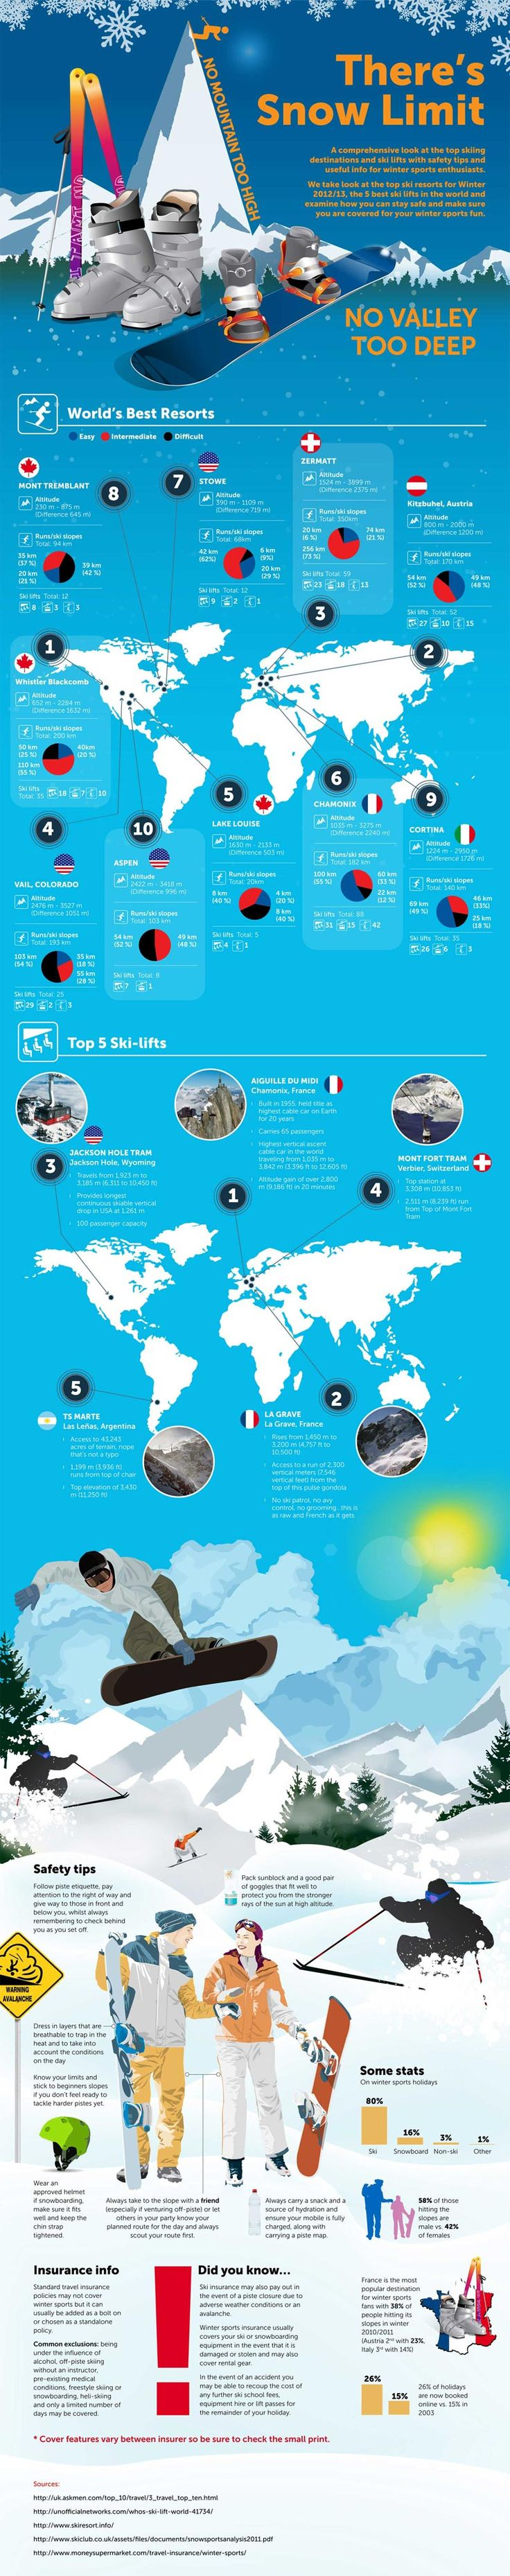 Infographic: Top Ski Resorts in the World - includes Mt Tremblant, Quebec, Lake Lousie, Alberta and Whistler Blackcomb, British Columbia